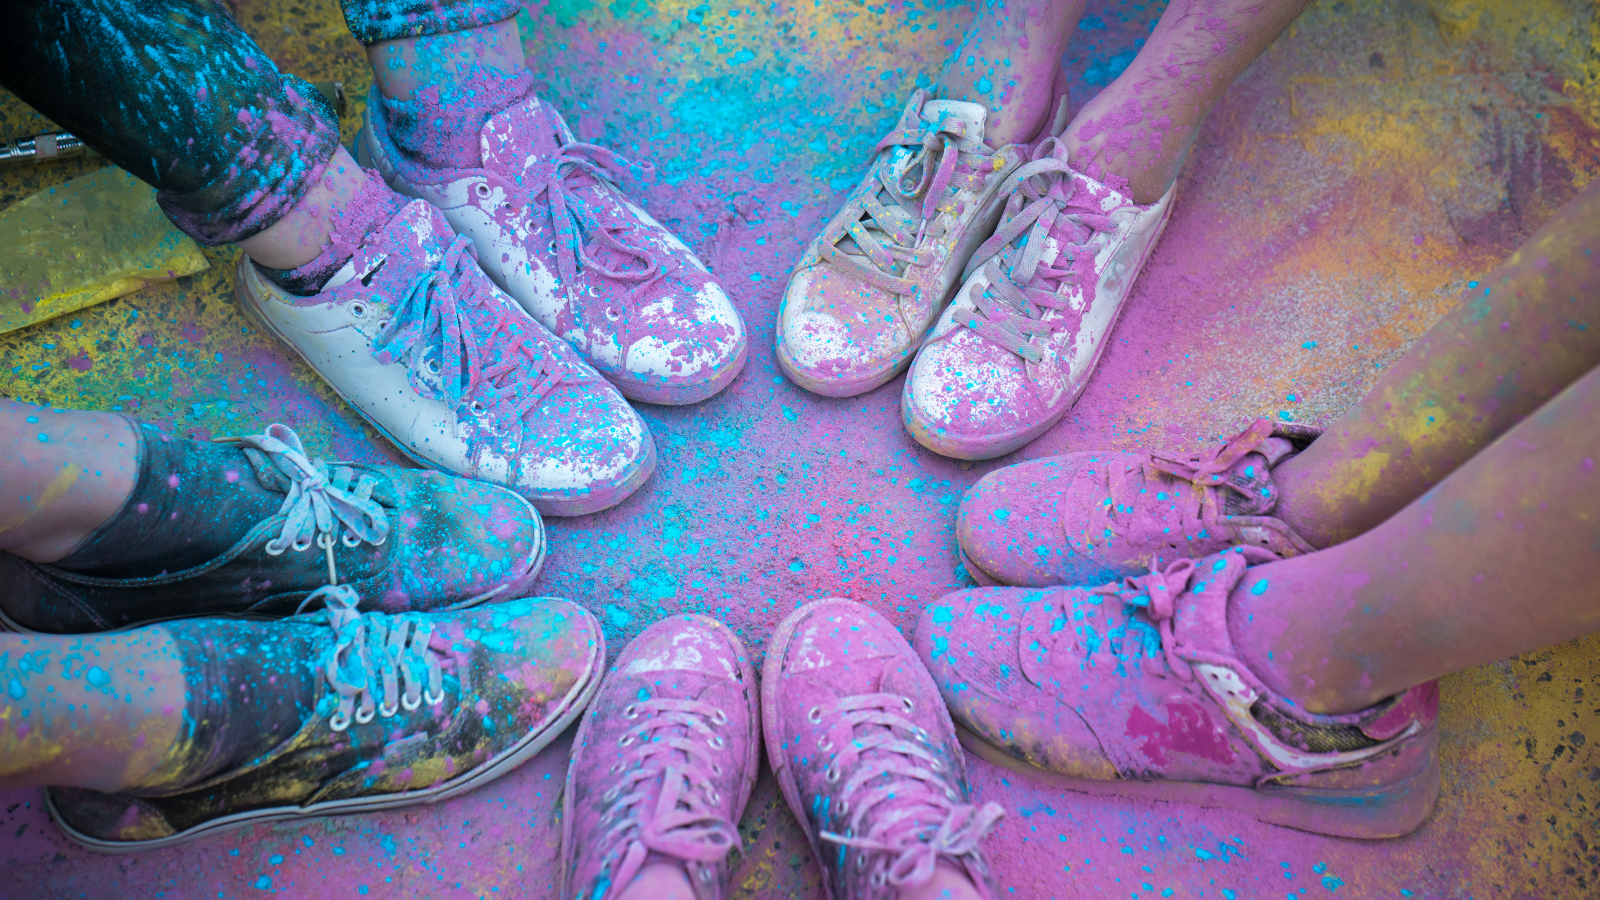 Children's shoes pushed together with pastel rainbow color powder on them